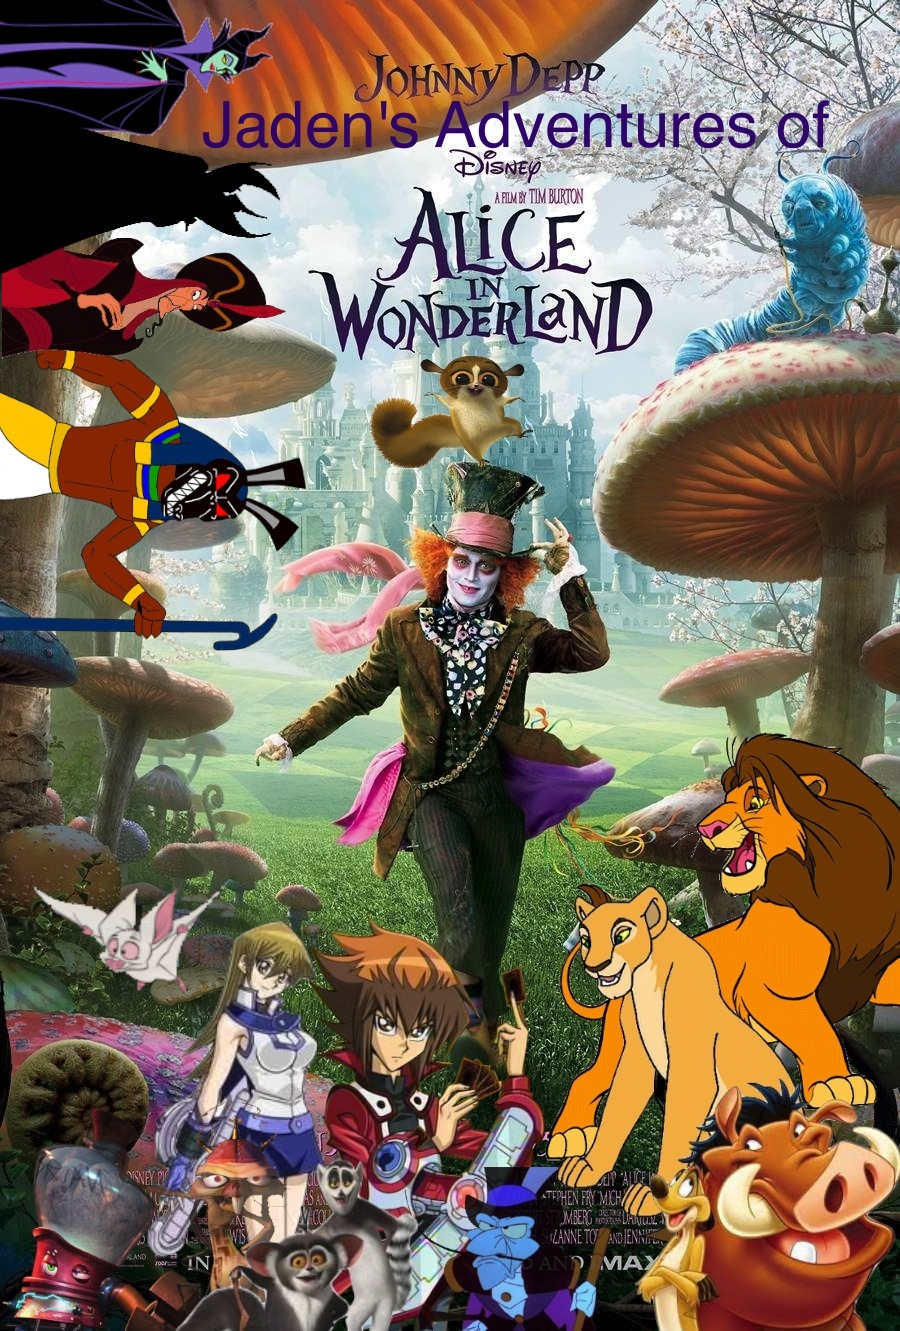 Jaden's Adventures of Alice in Wonderland (2010 version)